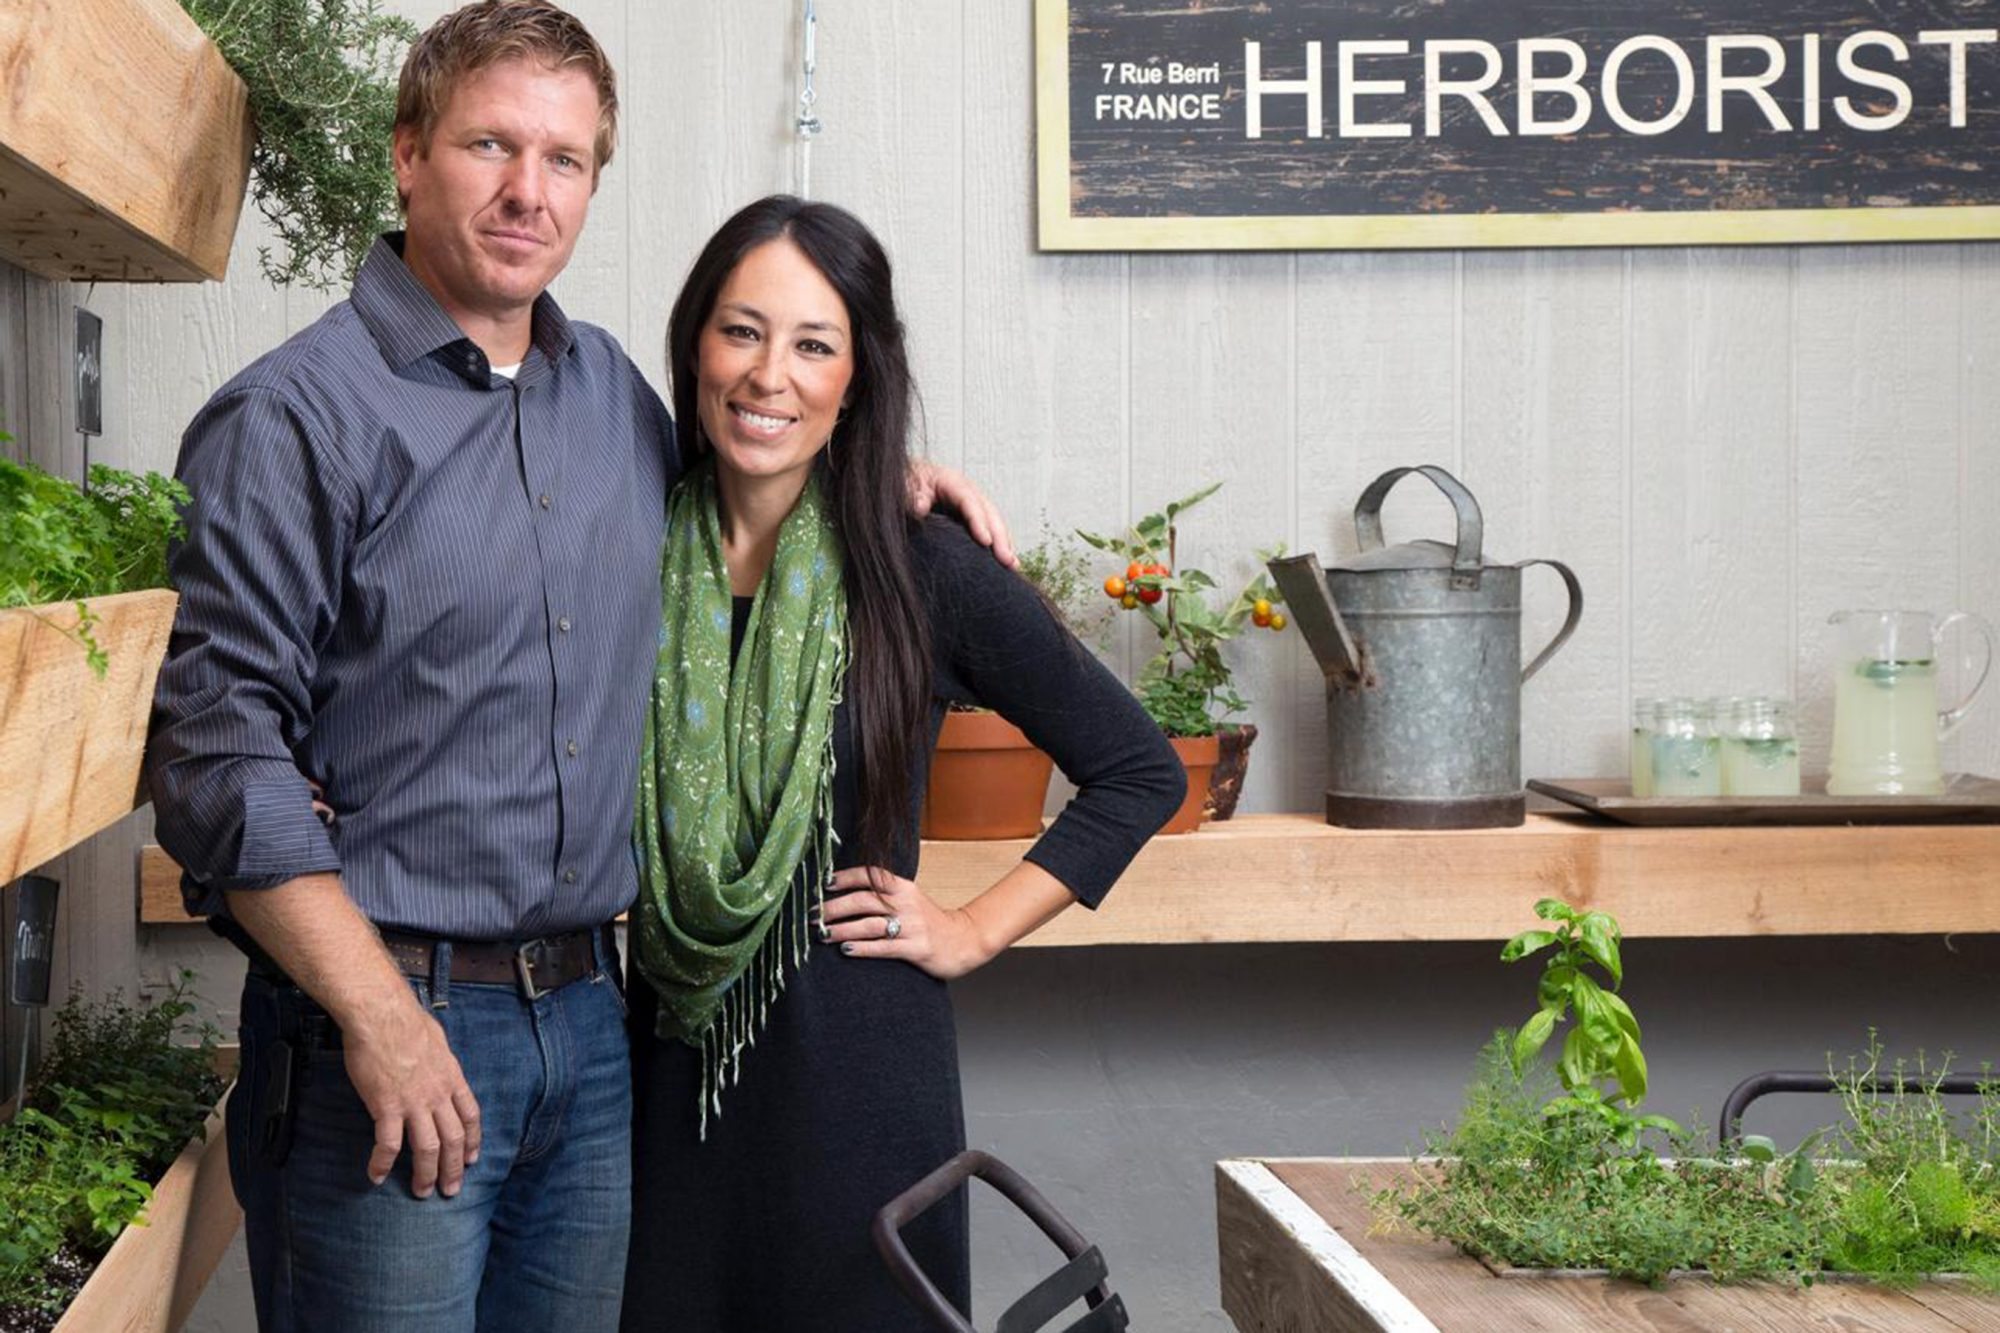 bp_hfxup103h_fixer-upper-hosts-chip-and-jo-113143-278629_h-jpg-rend-hgtvcom-1280-960